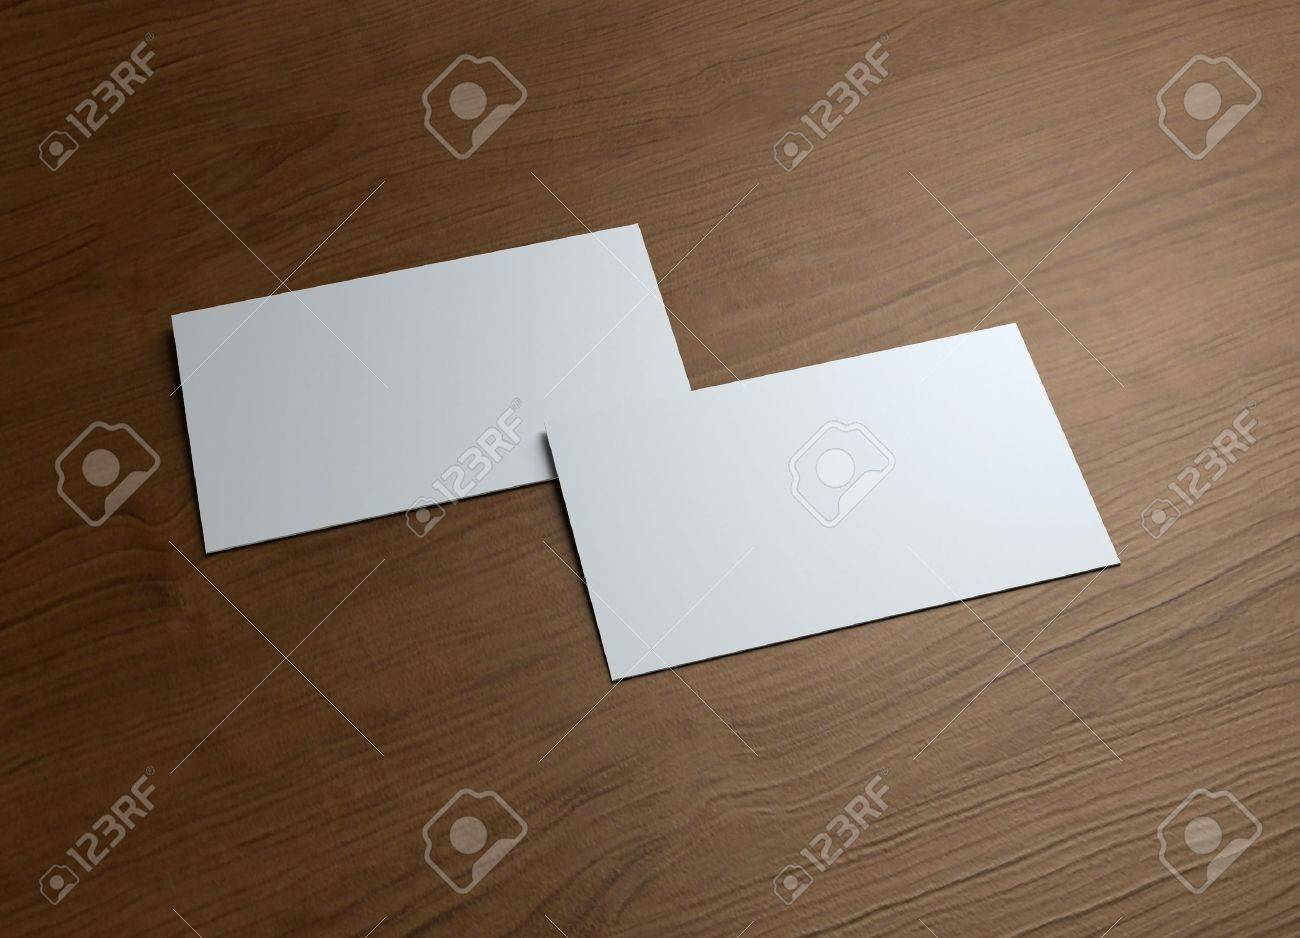 This business card presentation for promotion of corporate this business card presentation for promotion of corporate identity stock photo 12980190 magicingreecefo Image collections